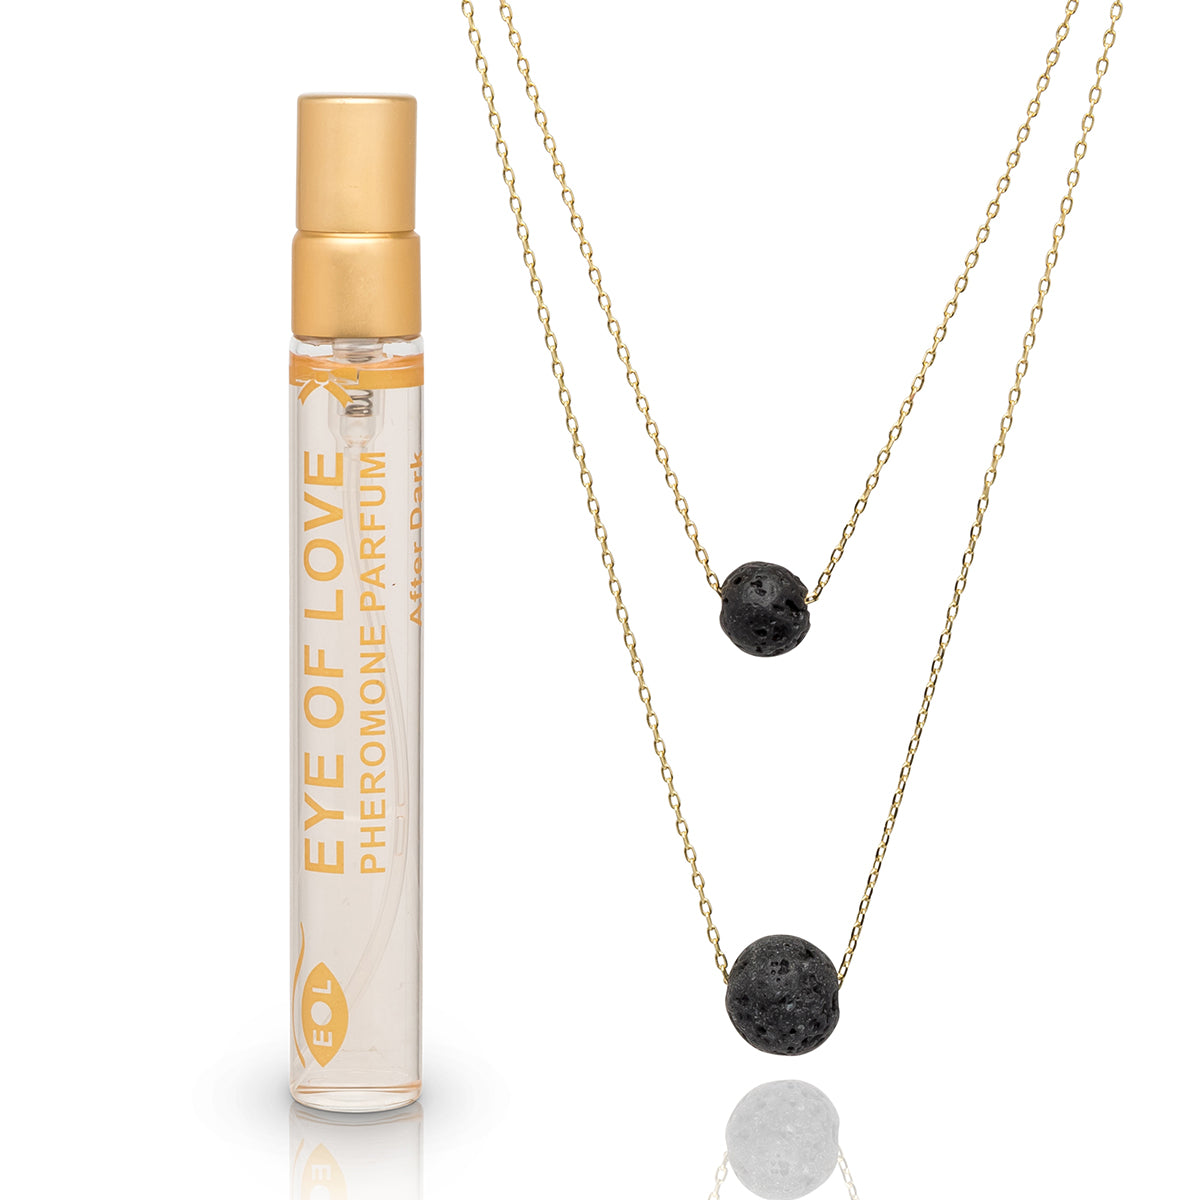 Eye of Love 2-Layer Necklace - Gold - After Dark 10ml